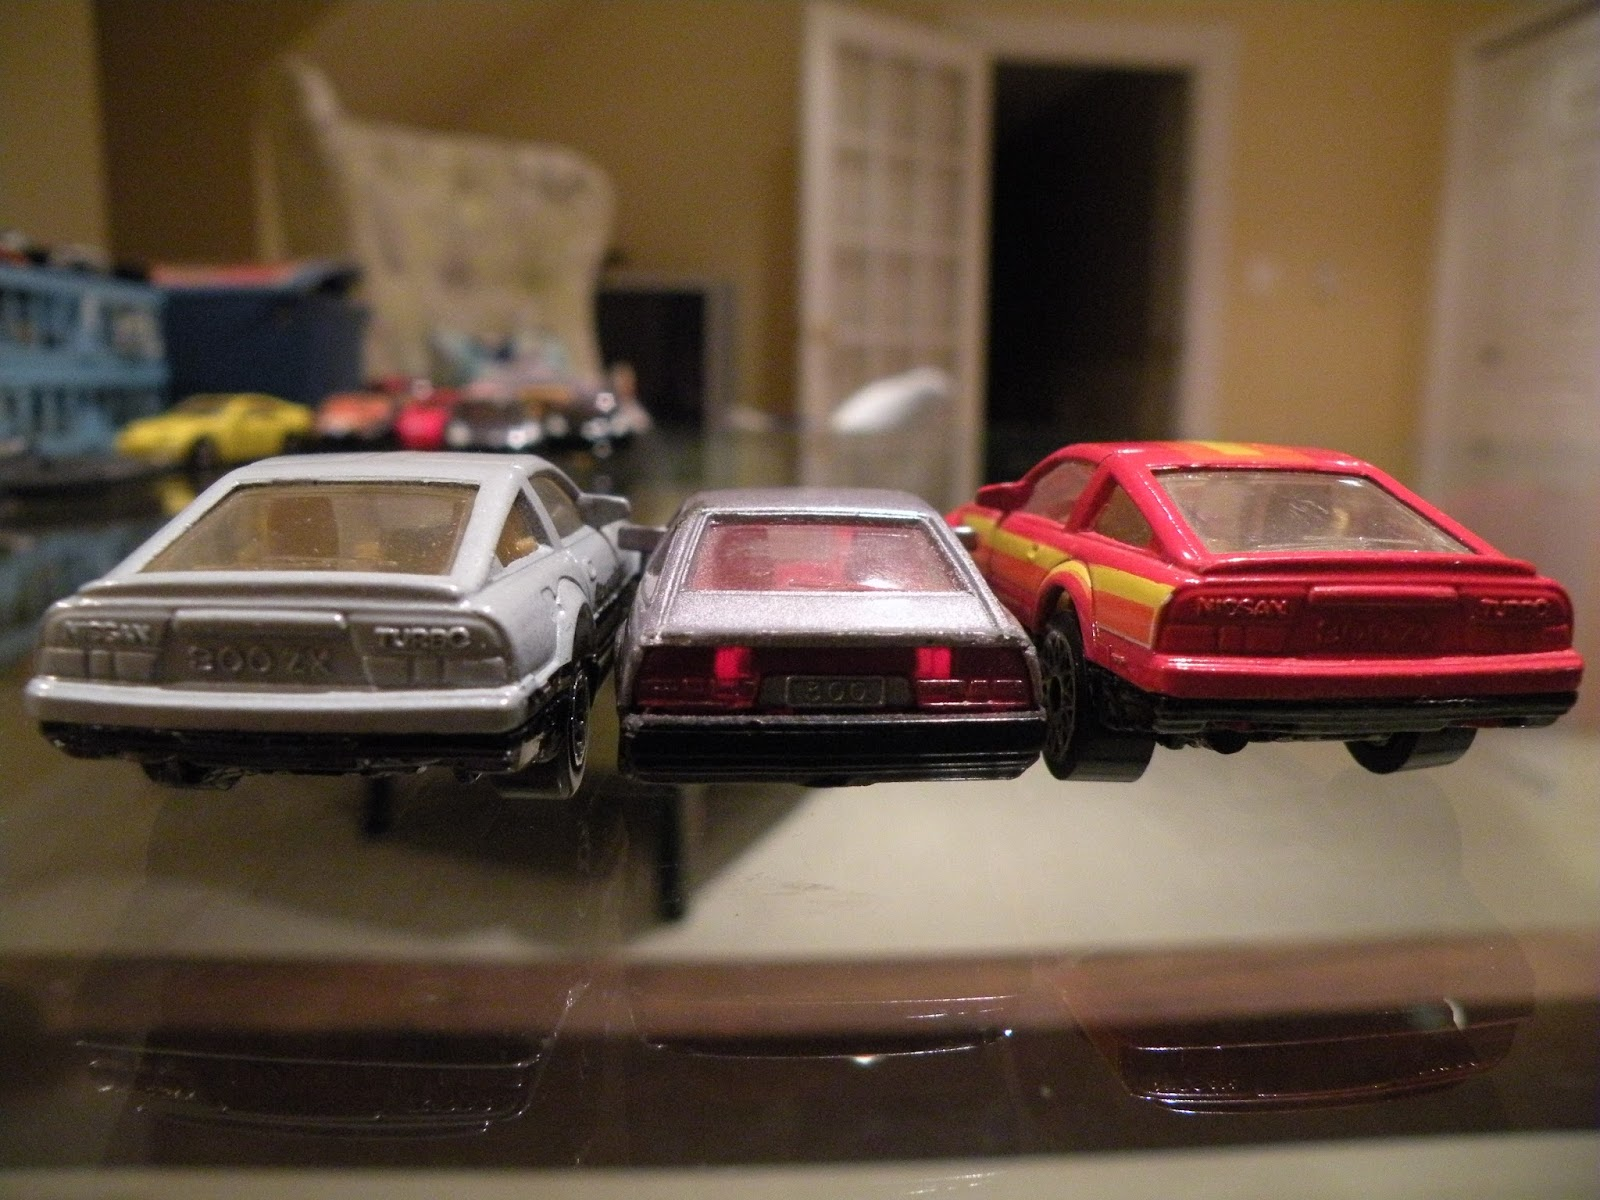 Matchbox Frenzy: Nissan Z Cars throughout the years